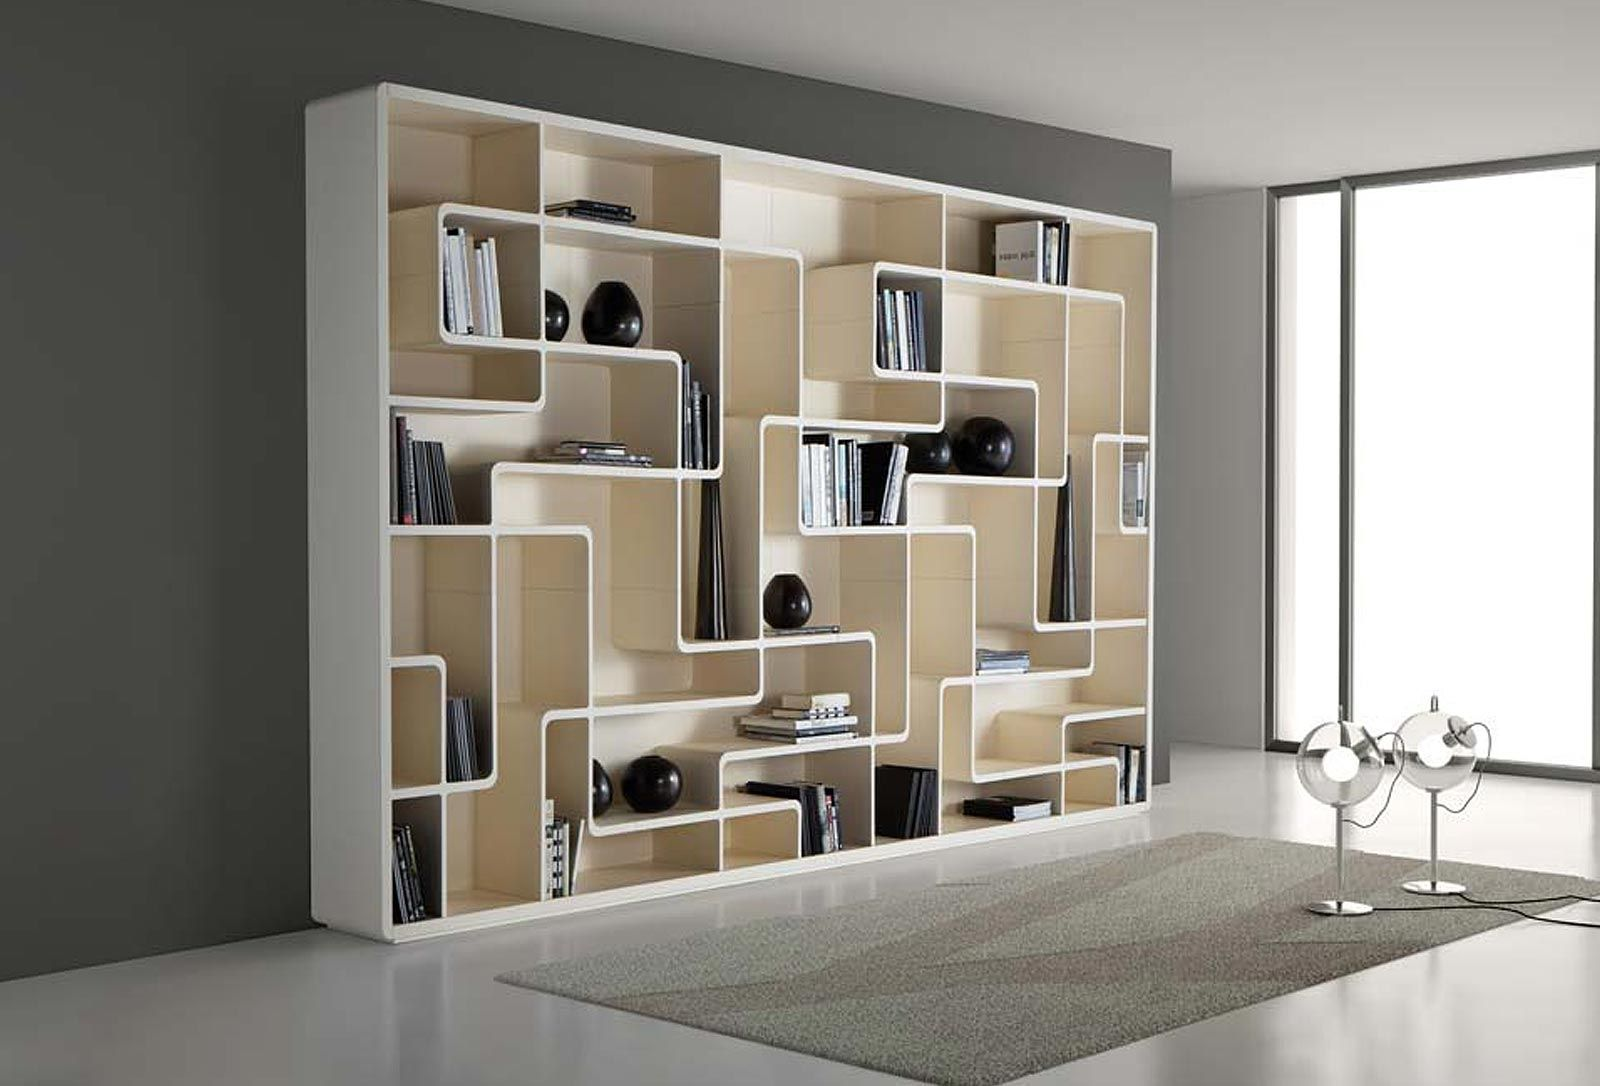 Interesting Modern Bookcase For Home Furniture Design Beautiful Modern Bookcase For Home Furni Modern Bookshelf Design Minimalist Bookshelves Bookshelf Design